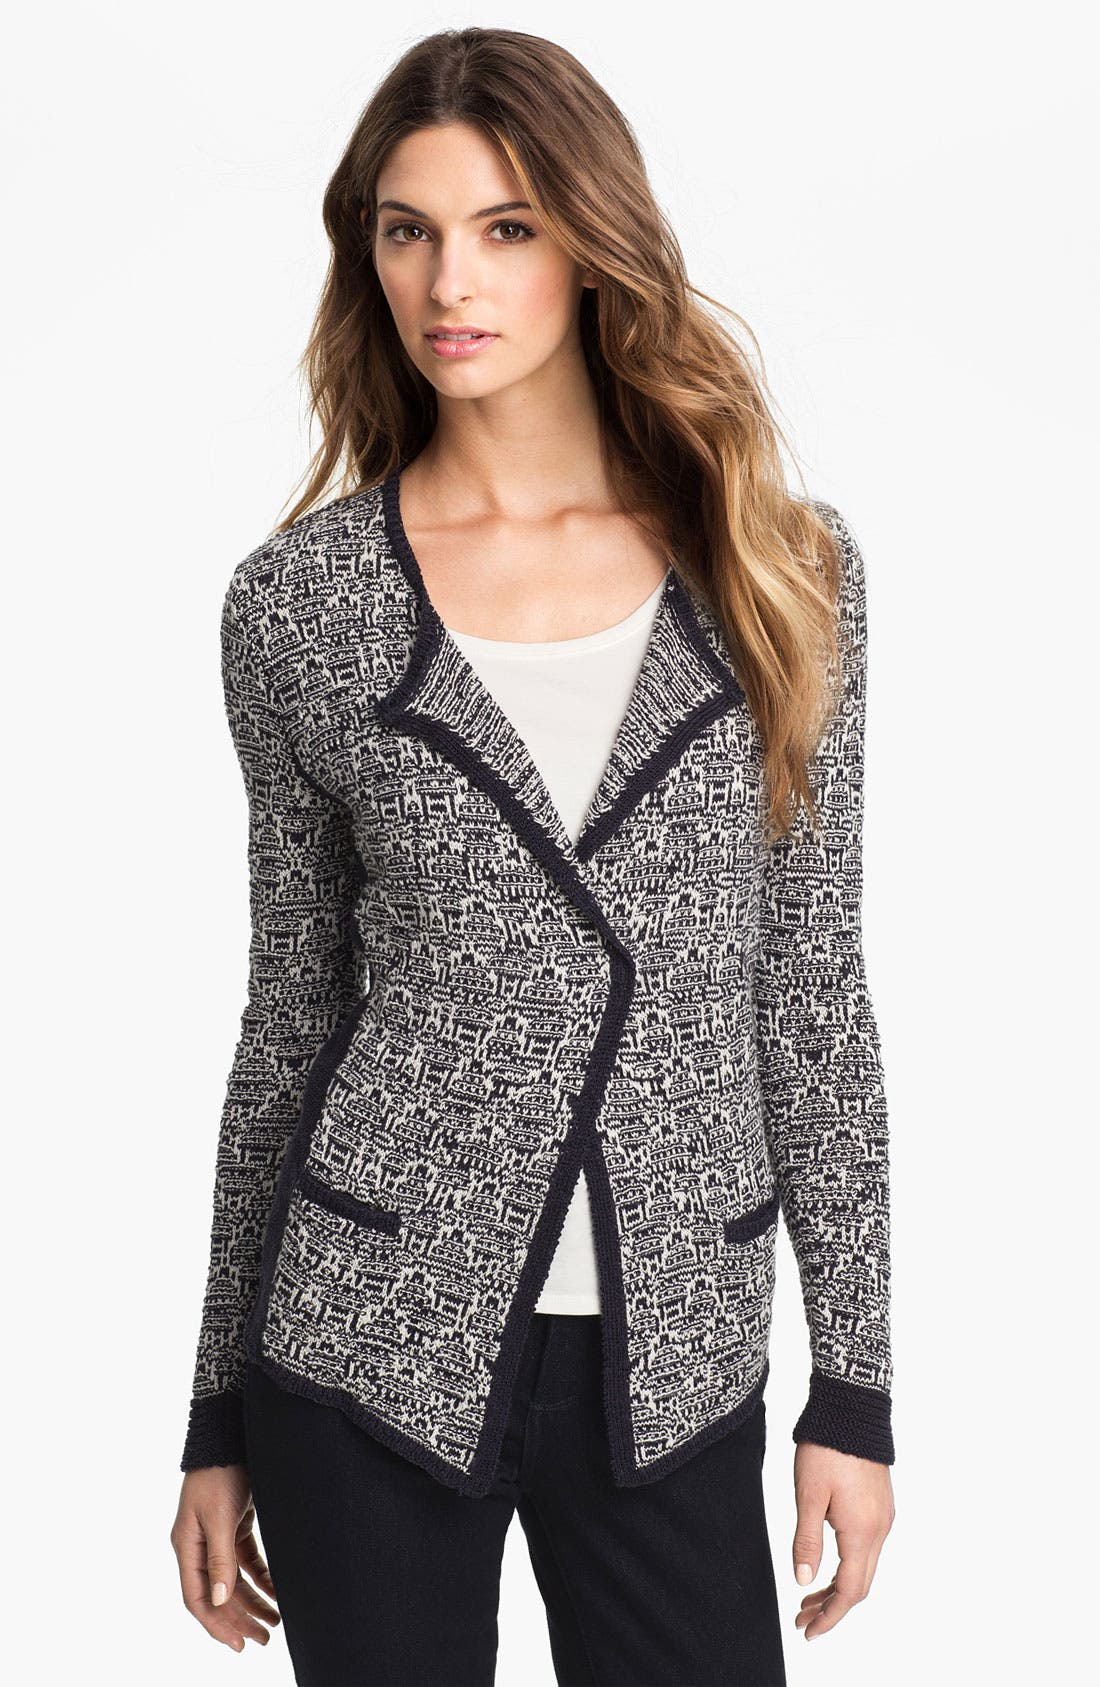 Alternate Image 1 Selected - Nic + Zoe 'Mixy' Sweater Jacket (Petite)